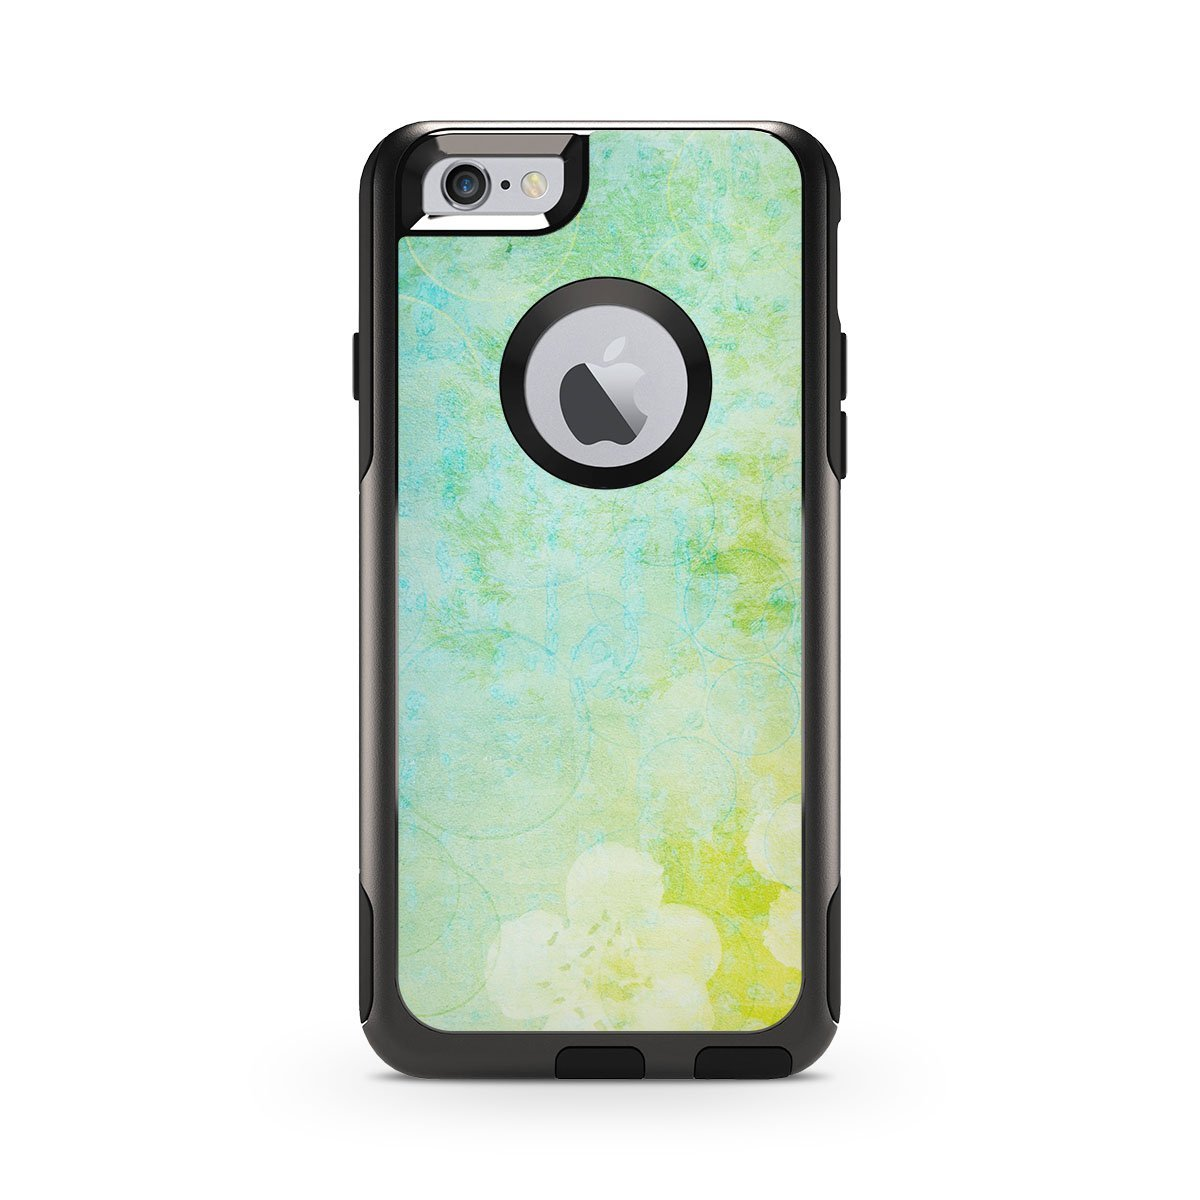 Otterbox coupon code